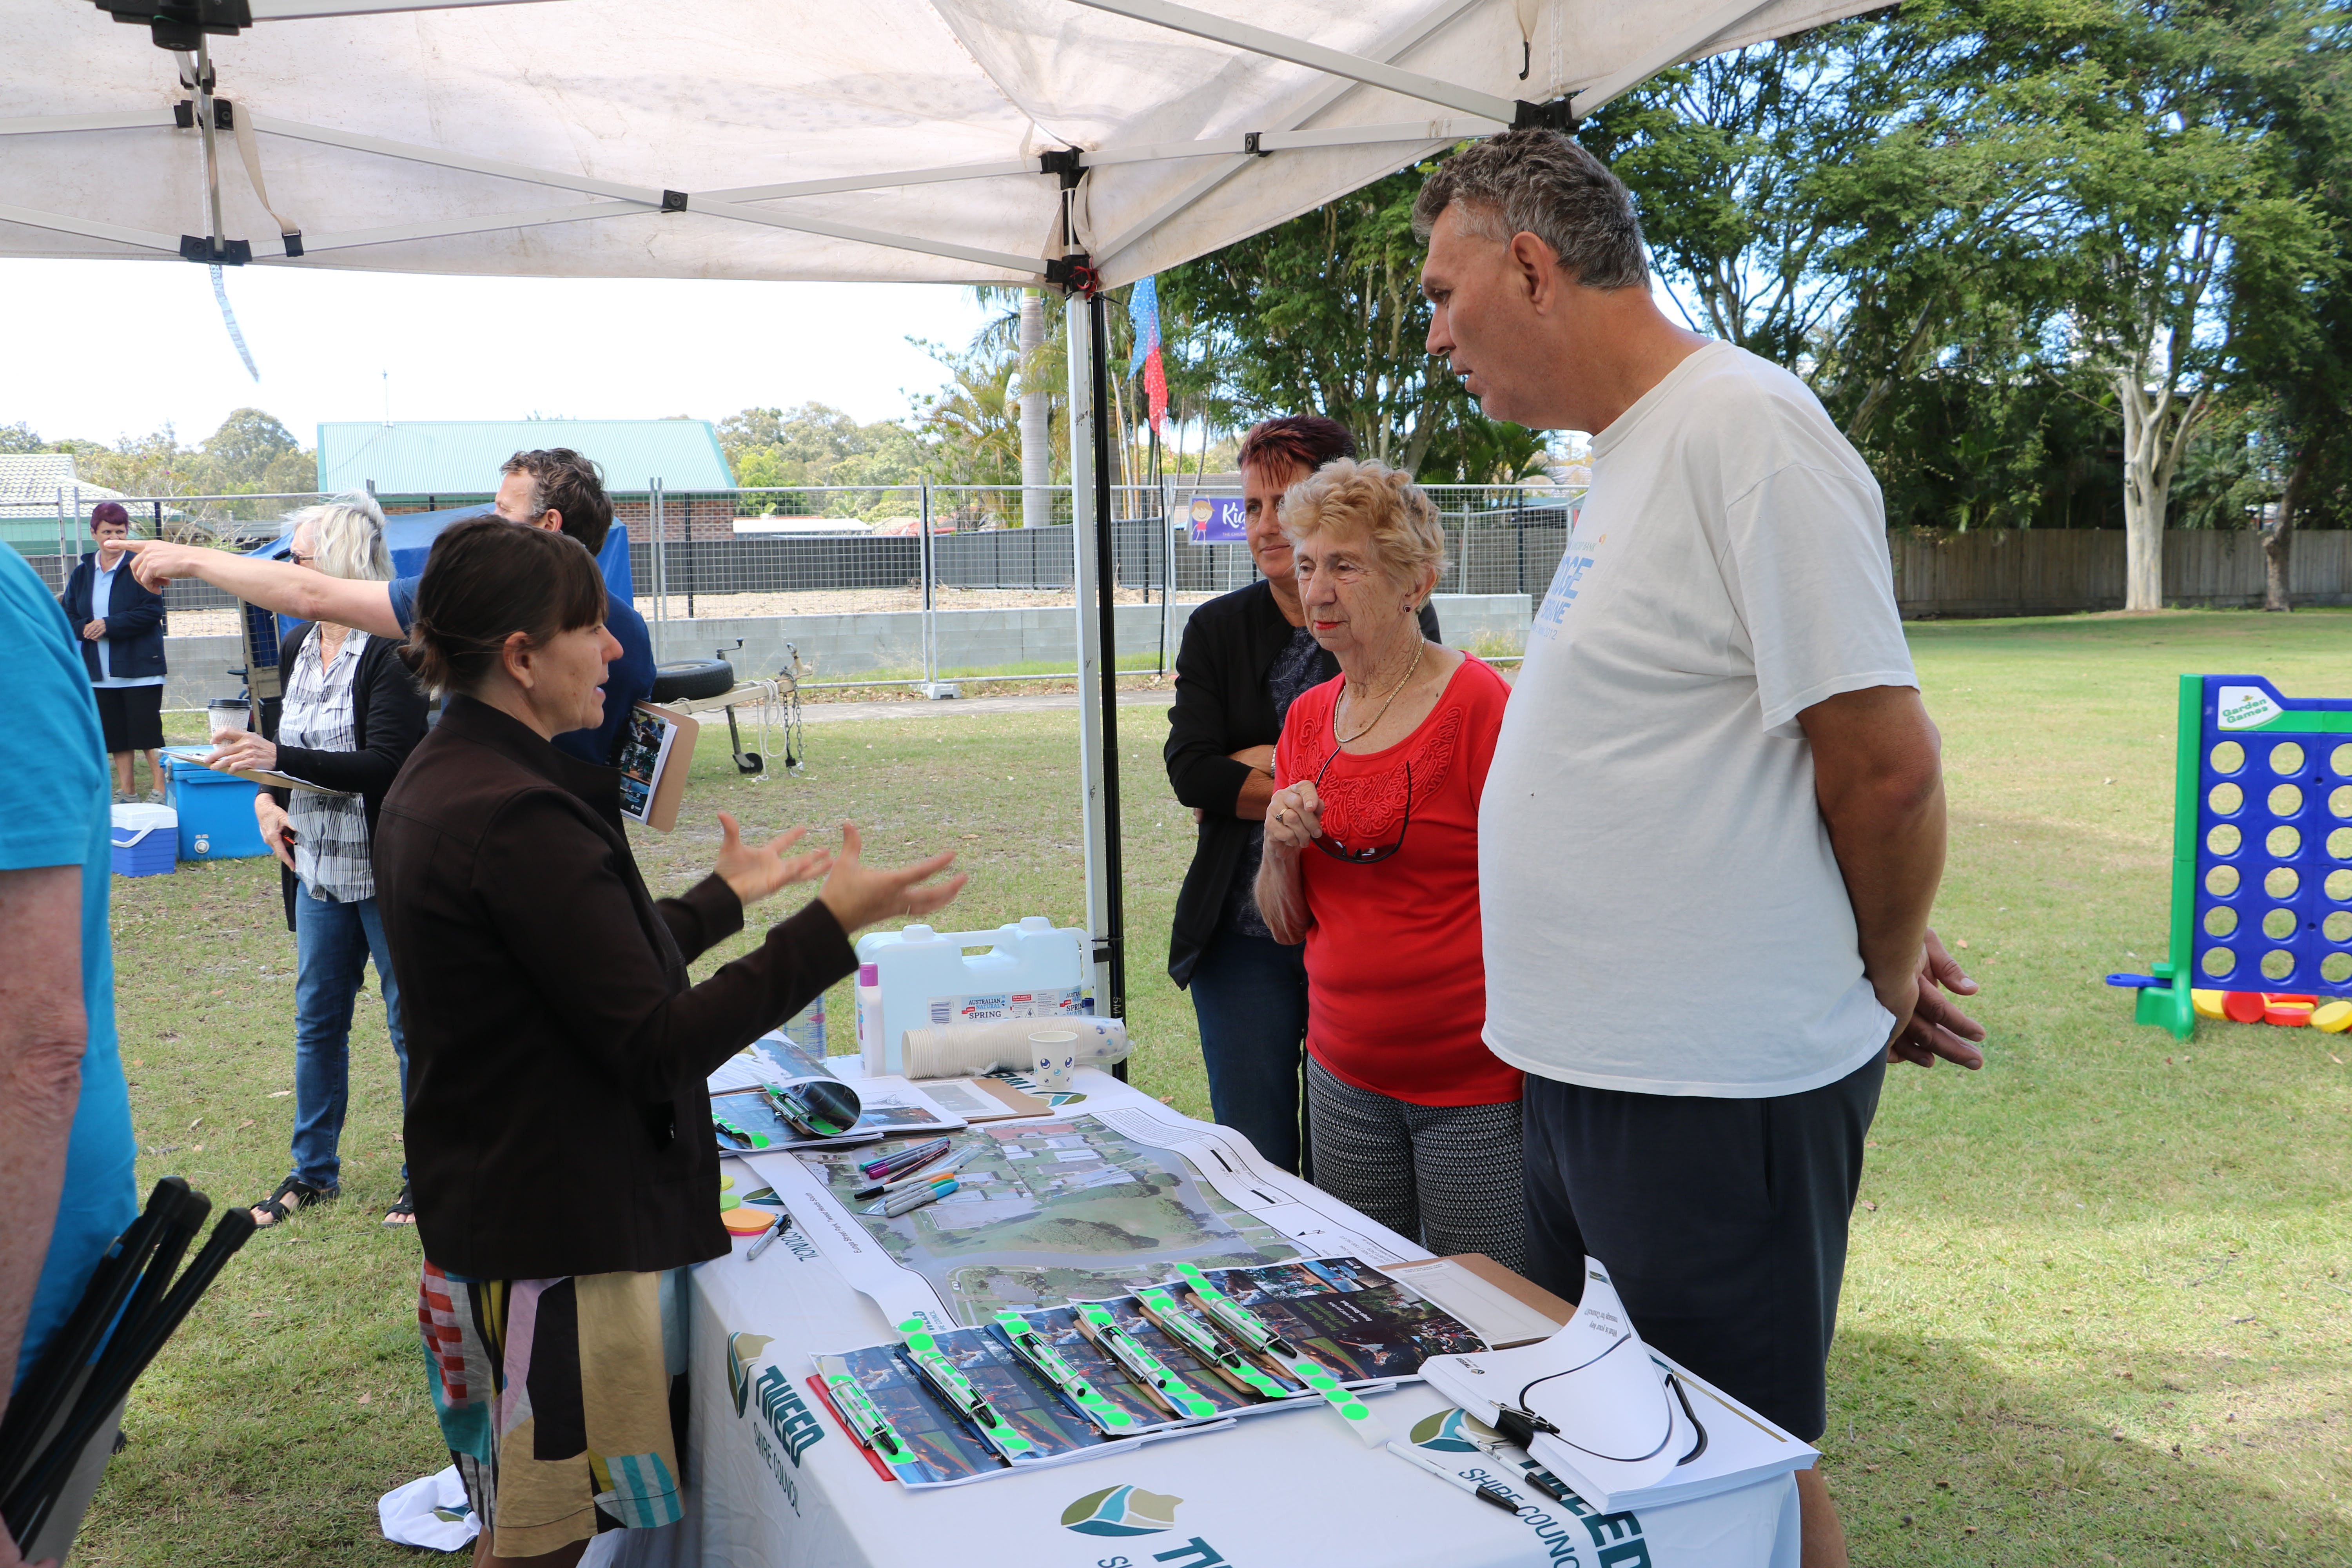 Tweed Shire Council staff talking to locals about the proposed park upgrades.